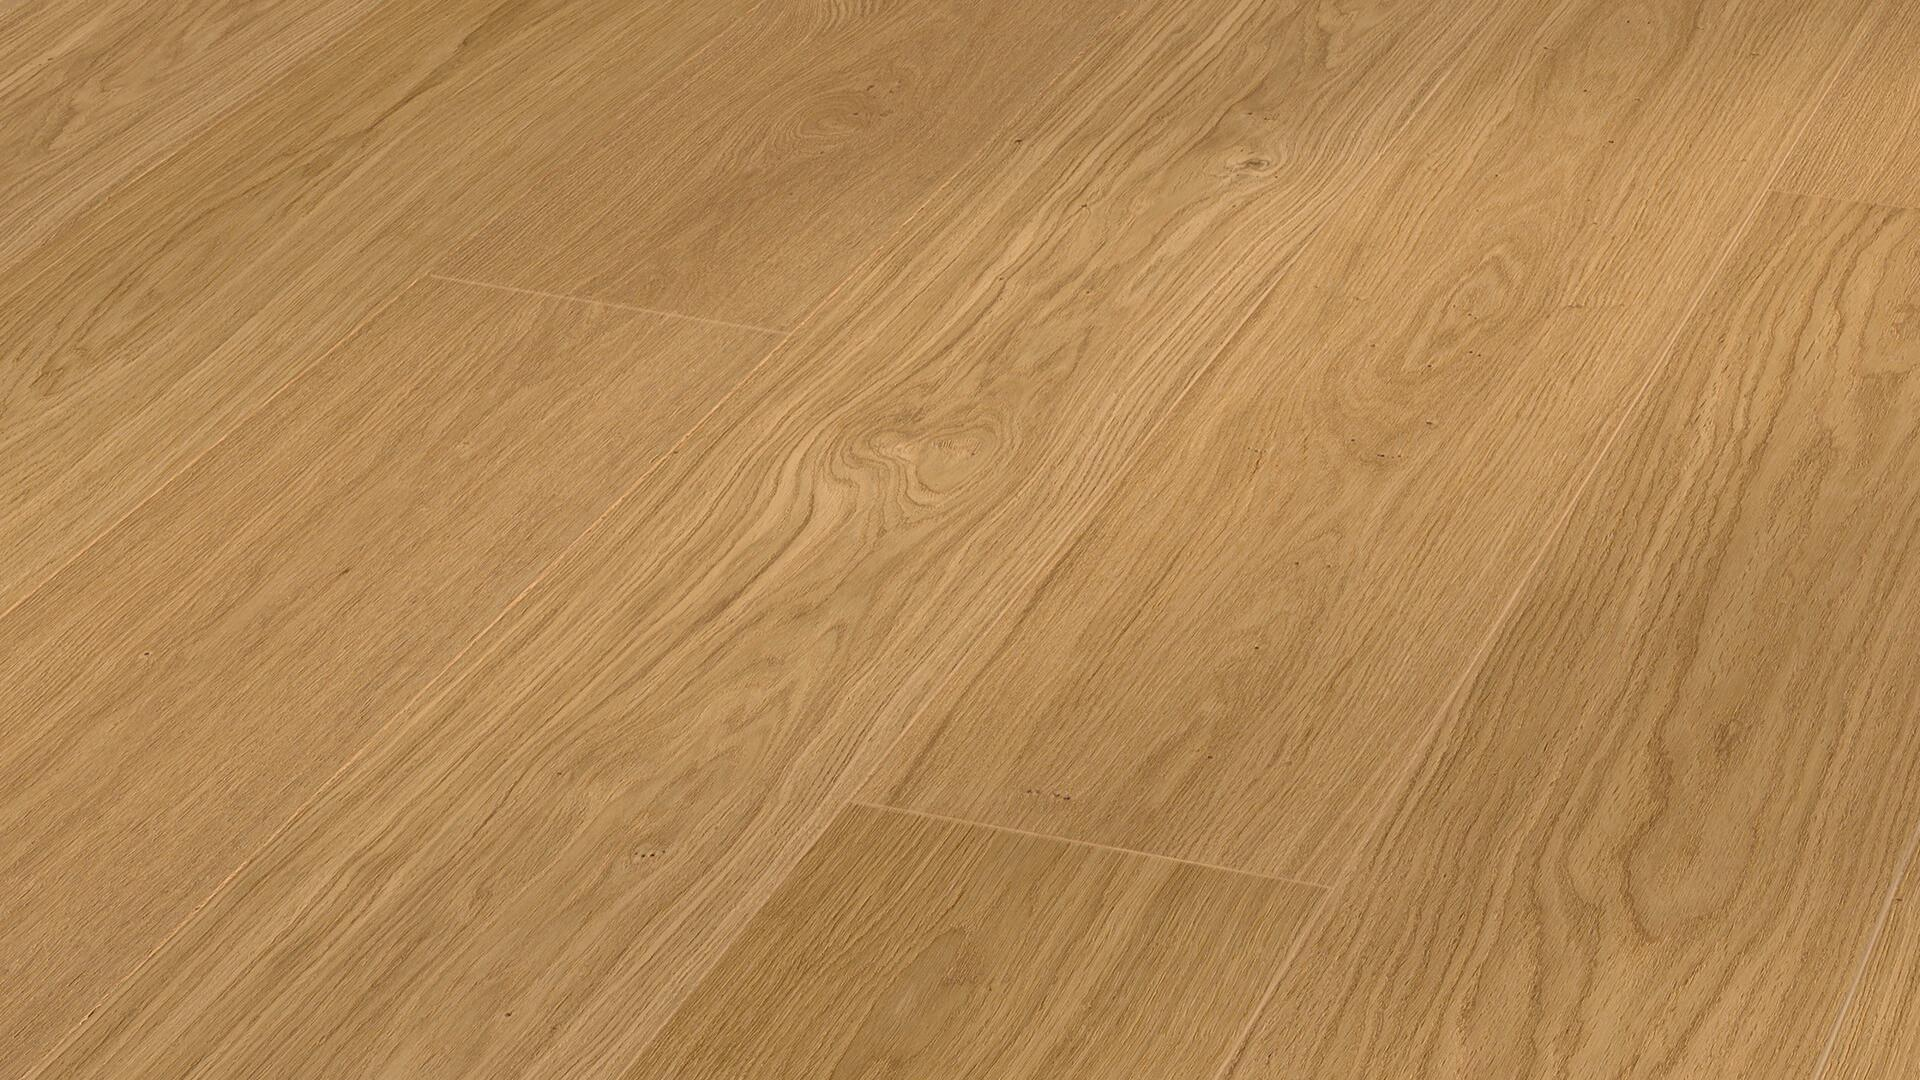 Parquet MeisterParquet. longlife PD 450 Roble armónico 8171